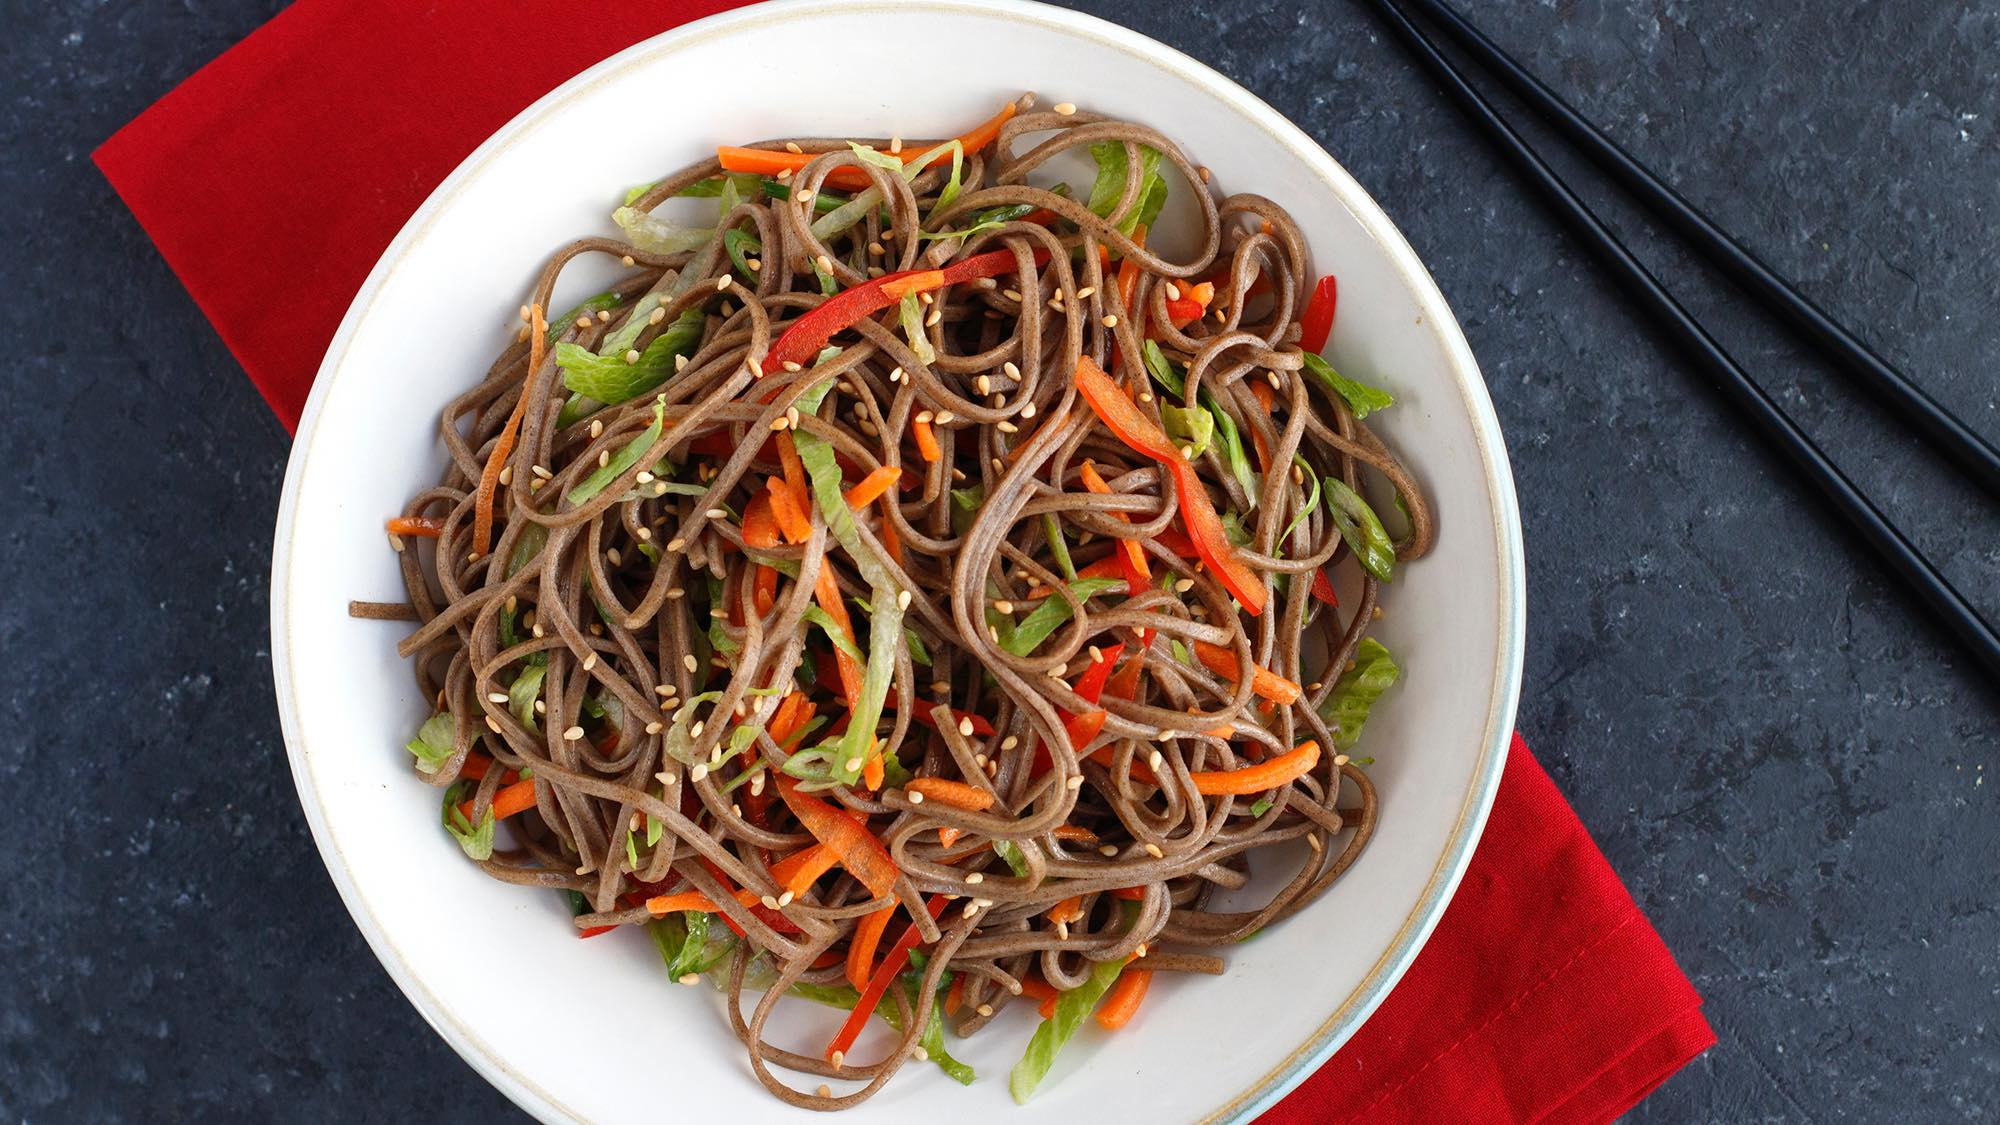 cold_soba_noodle_salad_recipes_2000x1125.jpg